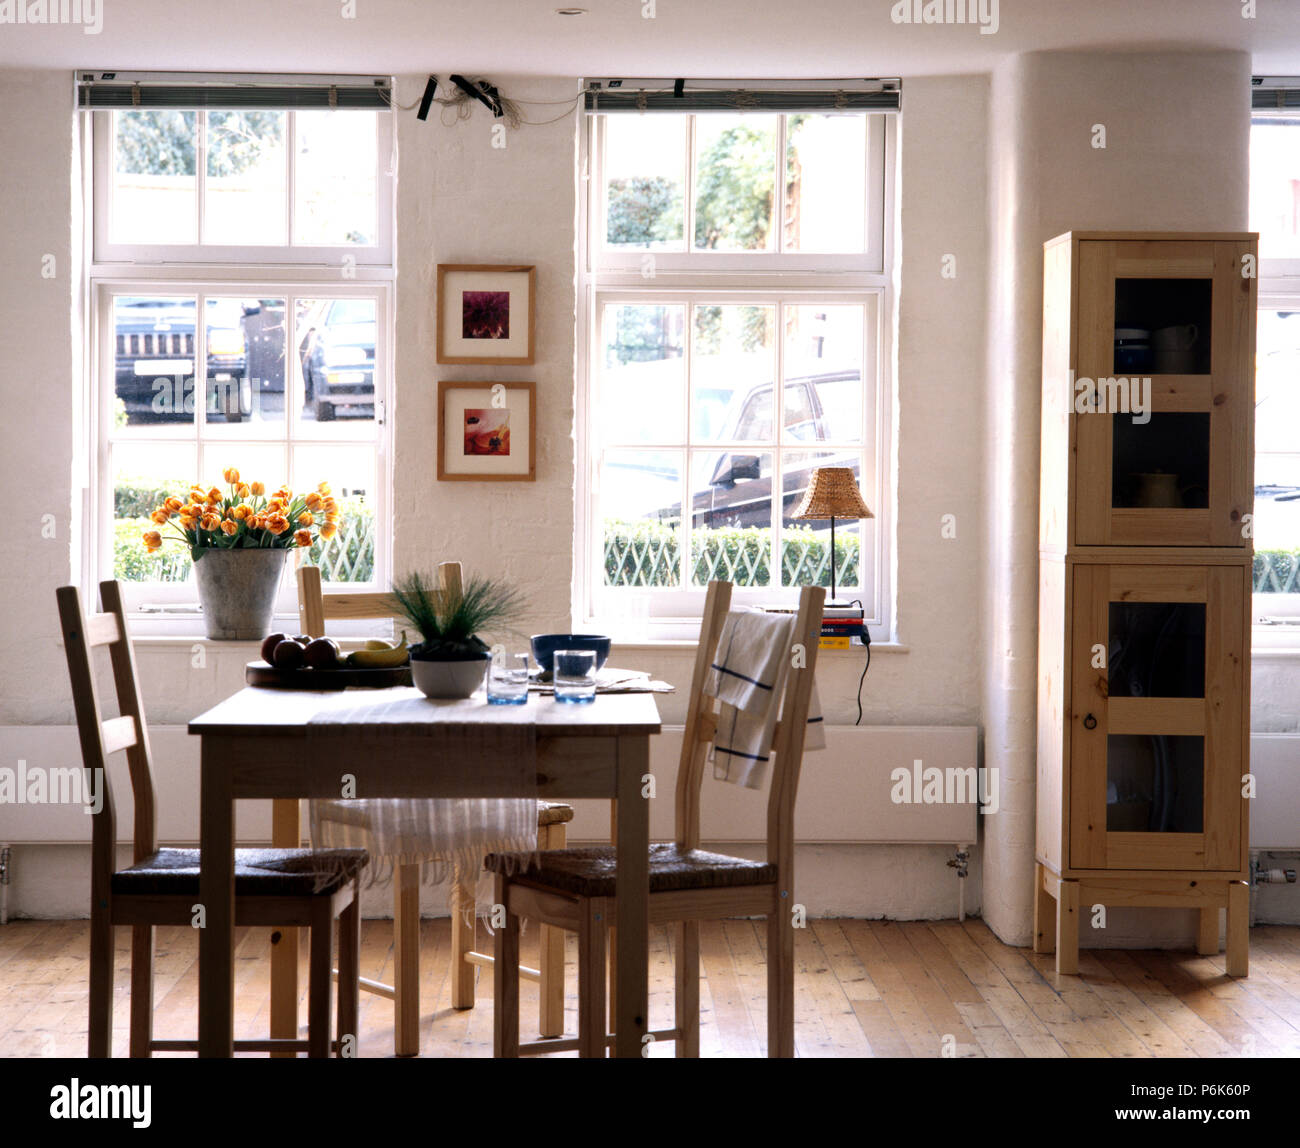 simple wooden dining table and chairs in an economy style dining rh alamy com